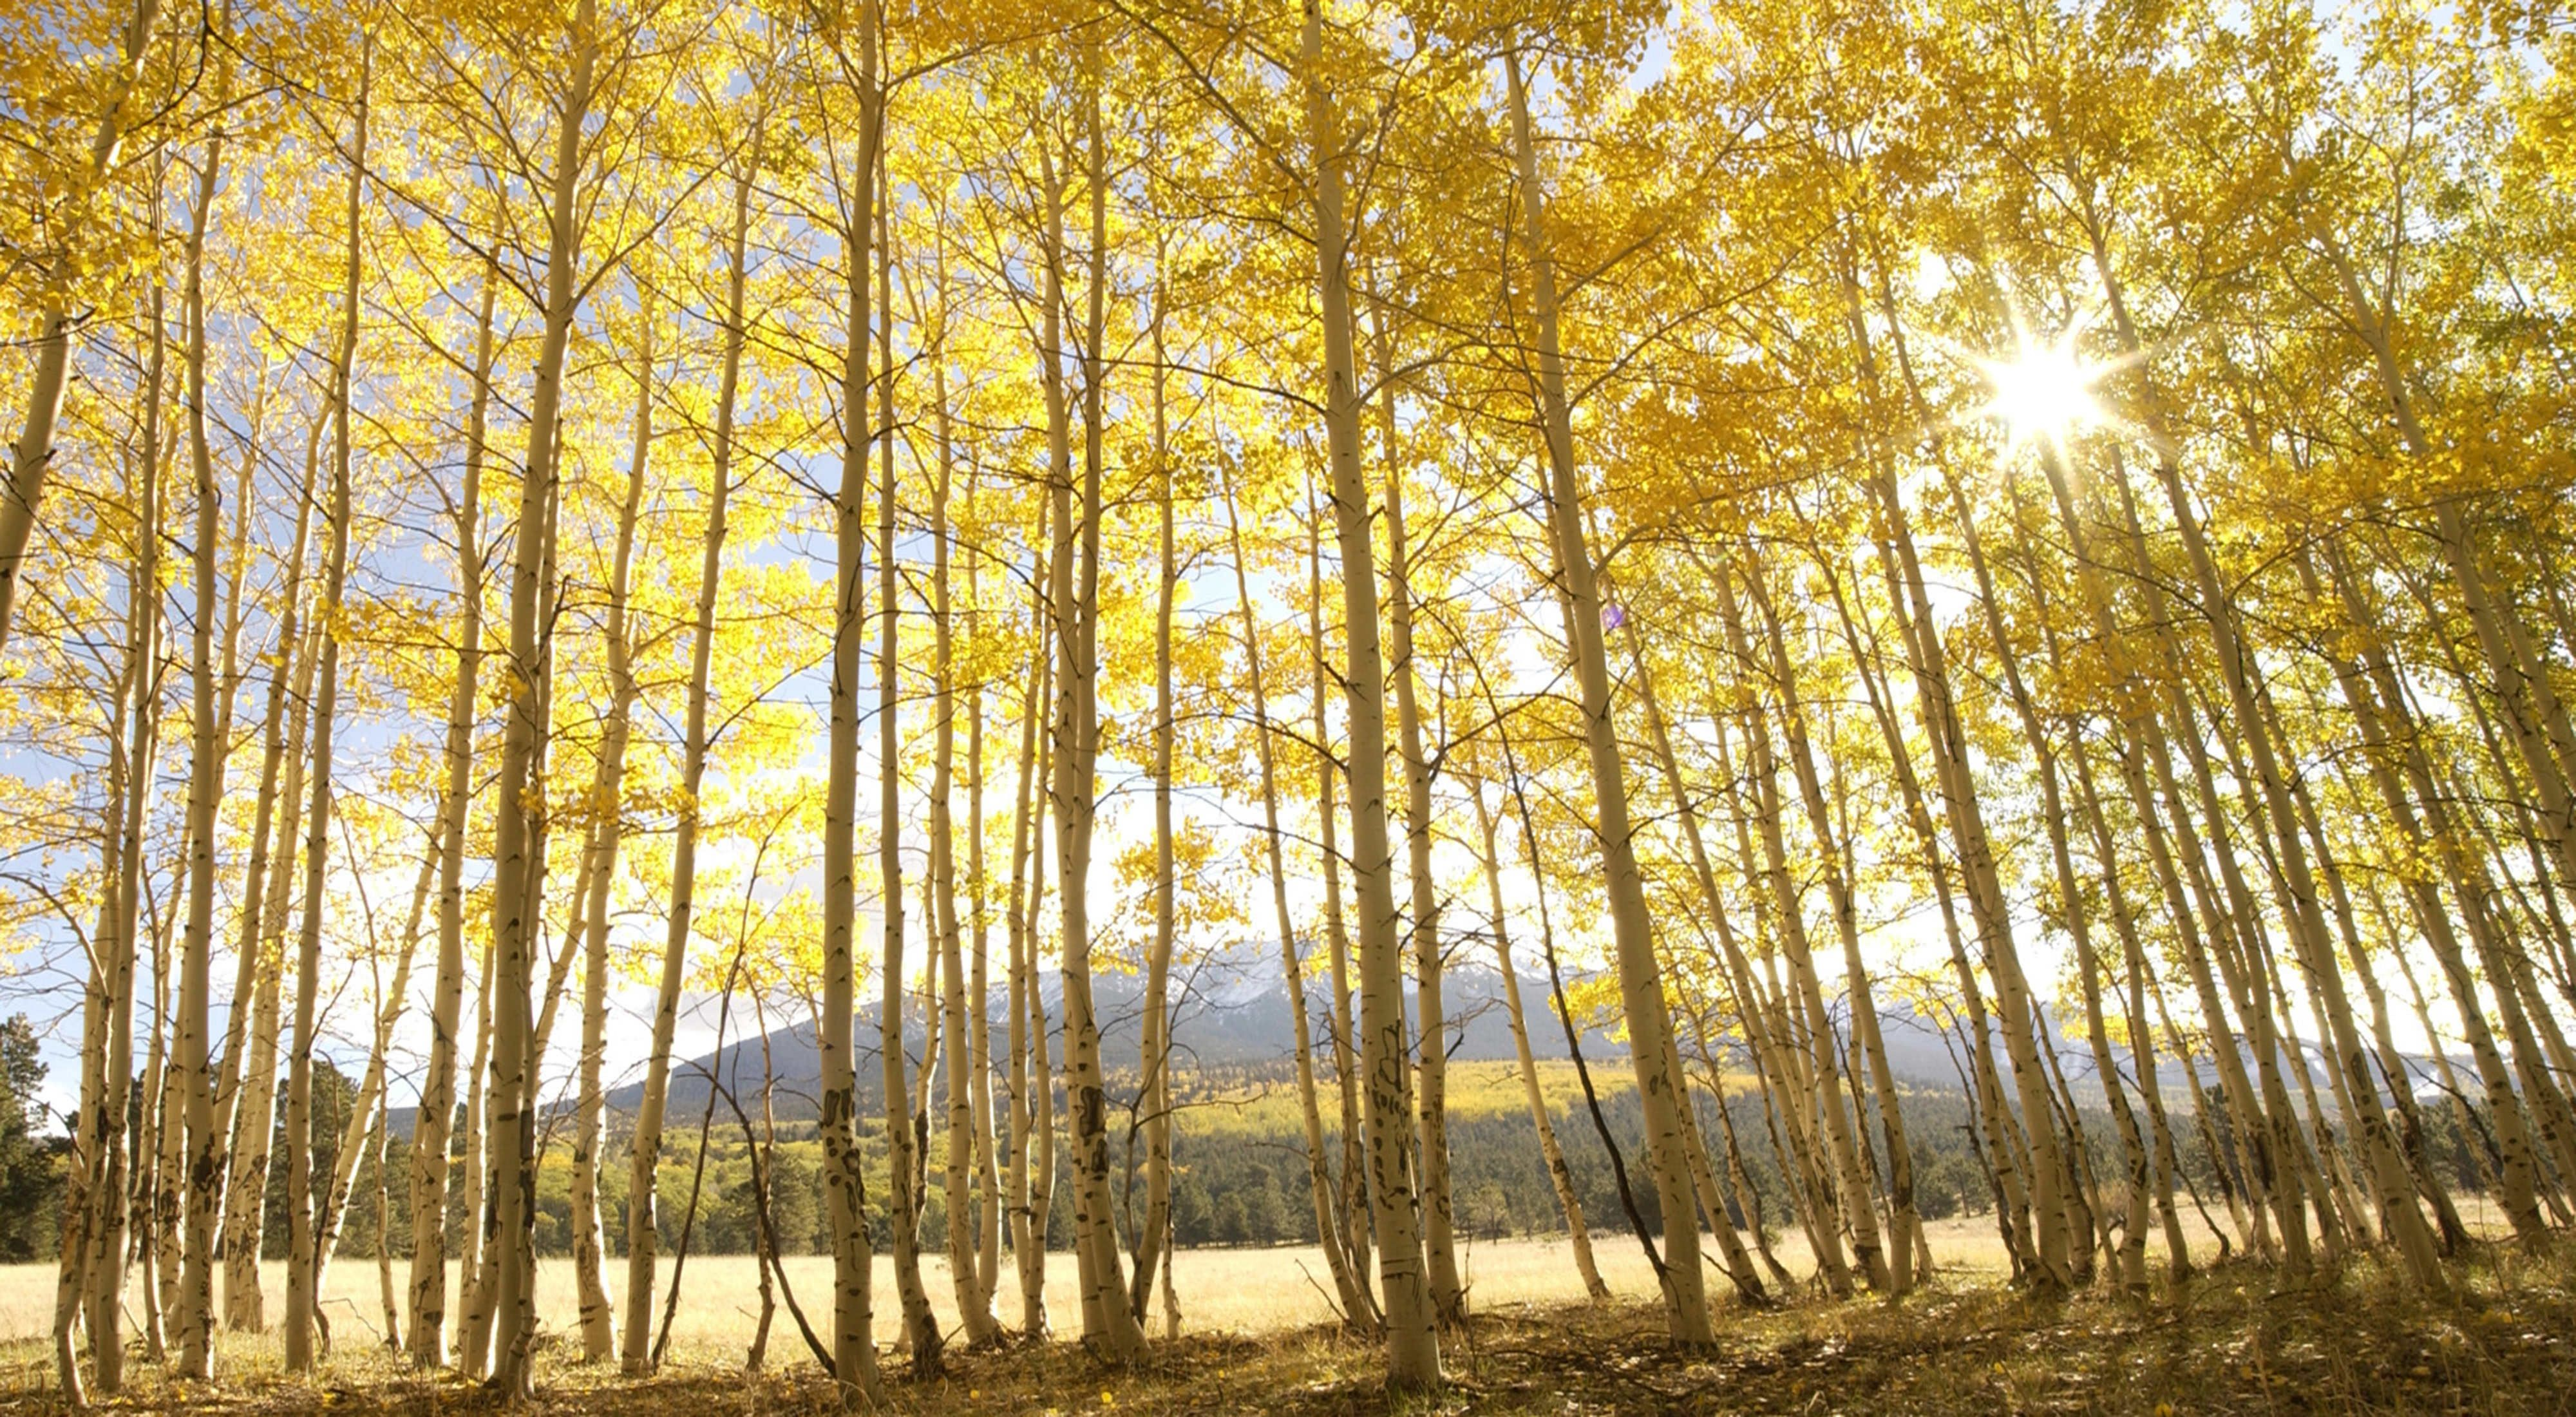 A grove of aspen trees in autumn with sun peeking through